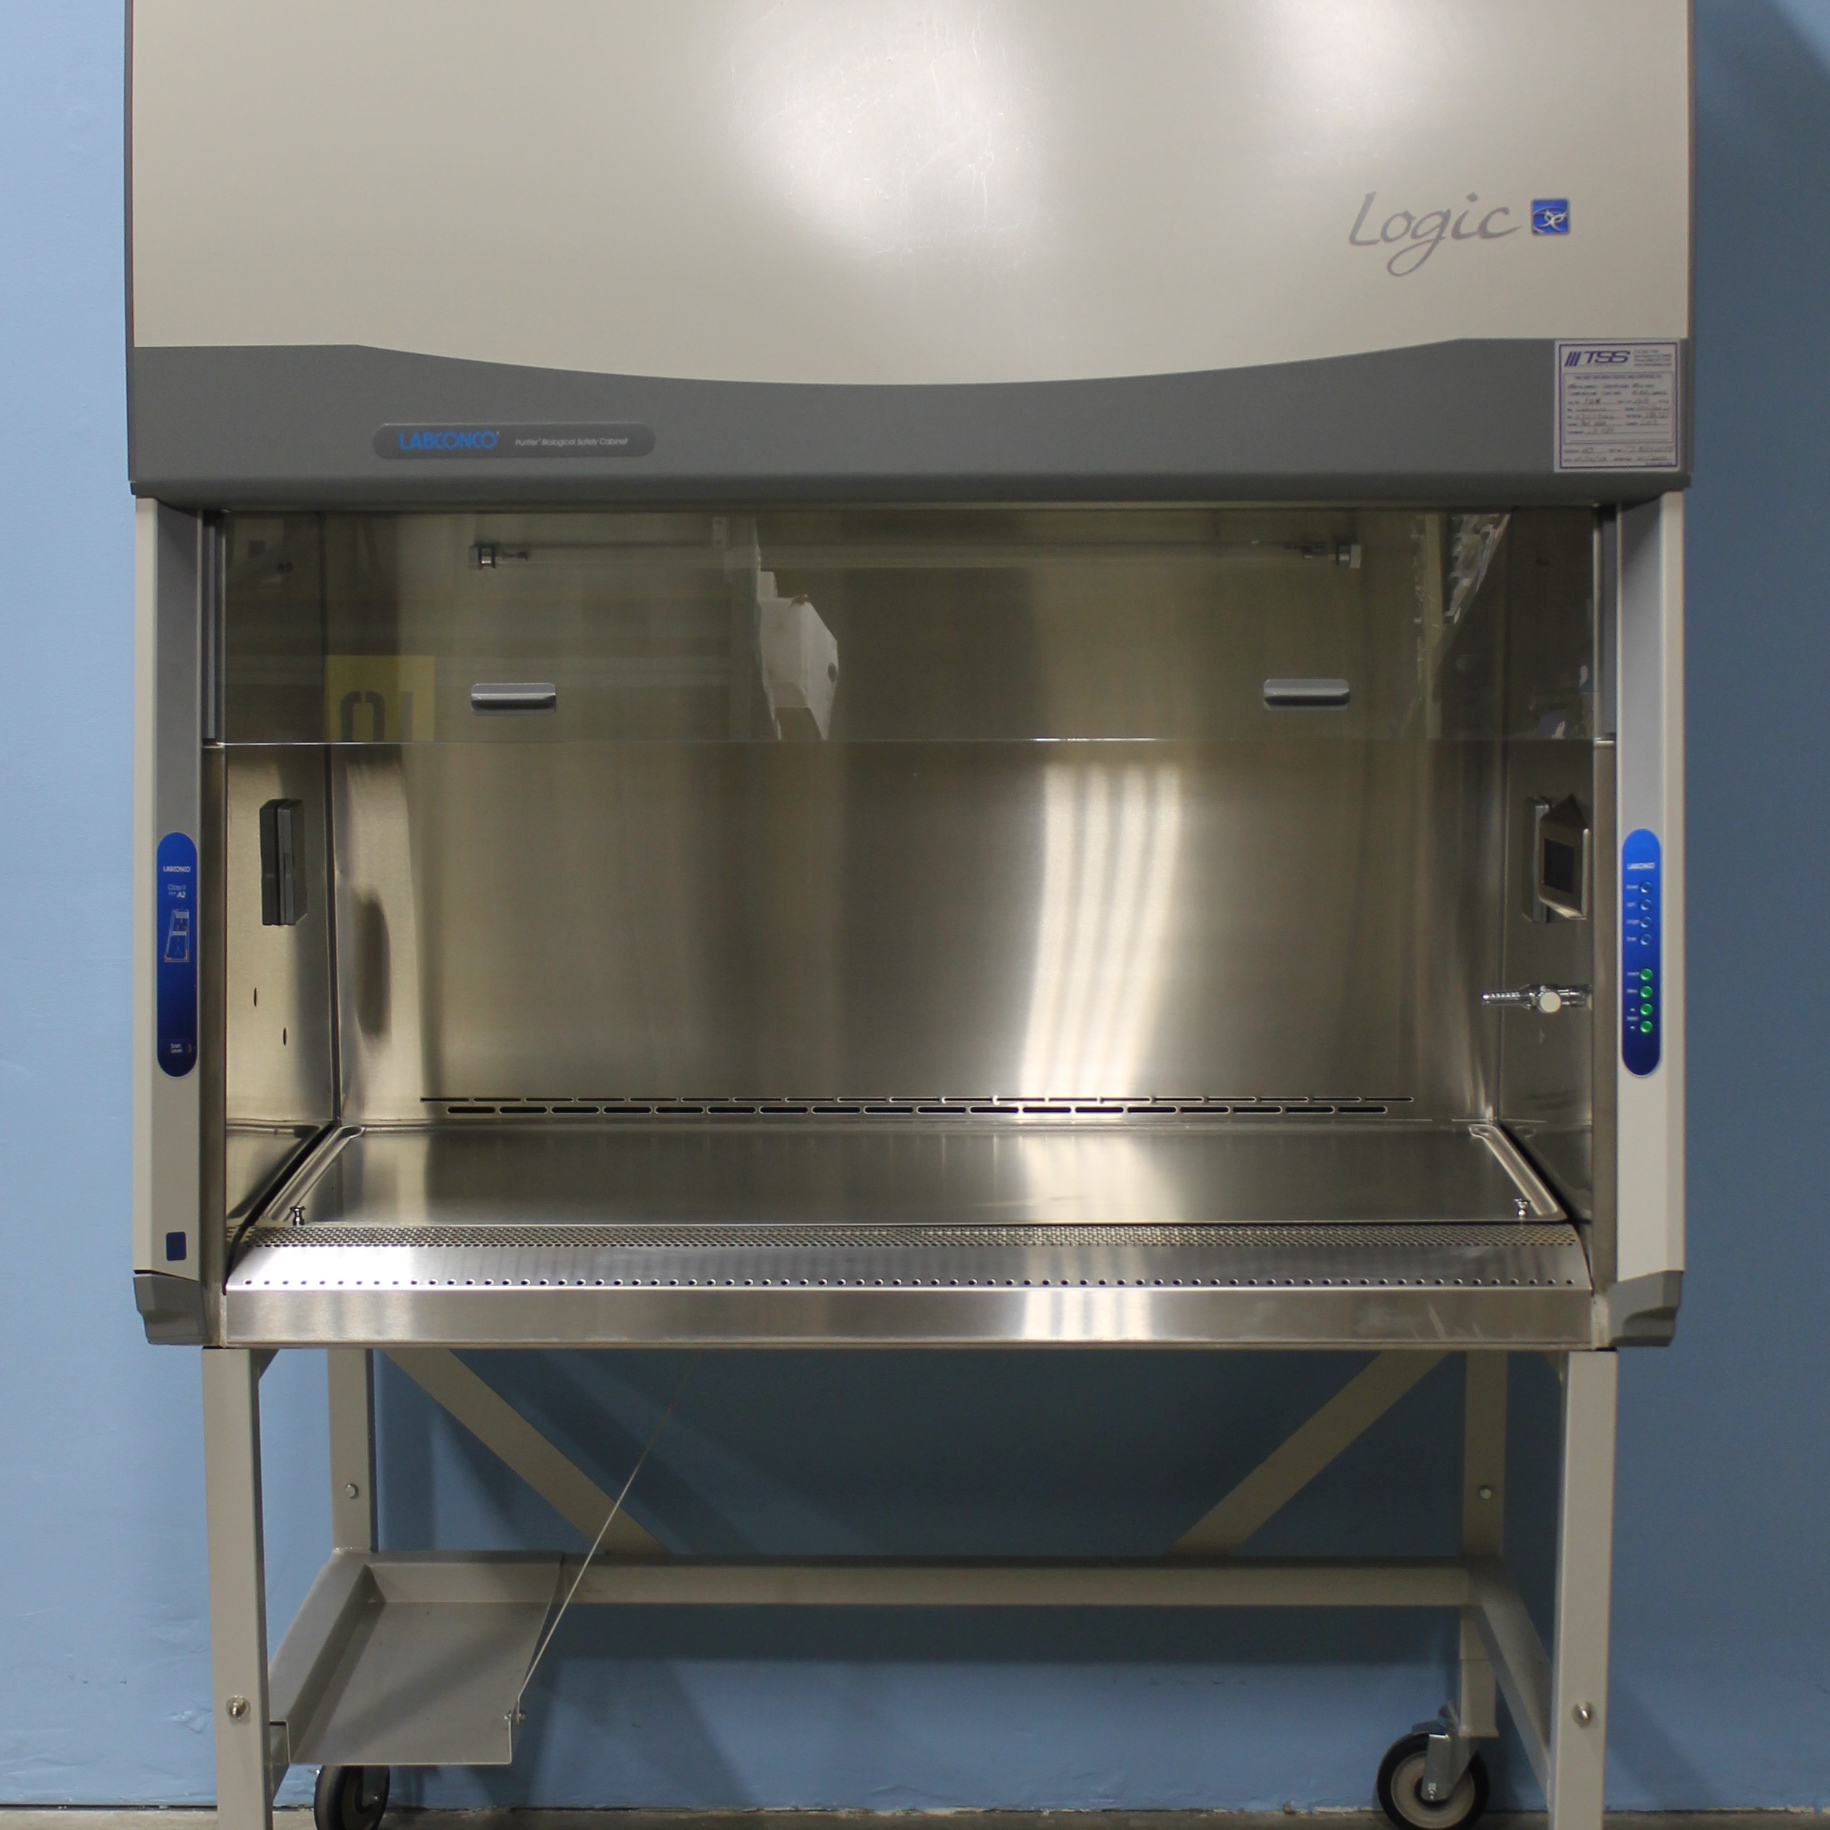 Labconco 4' Purifier Logic Class II, Type A2 Biological Safety Cabinet Image